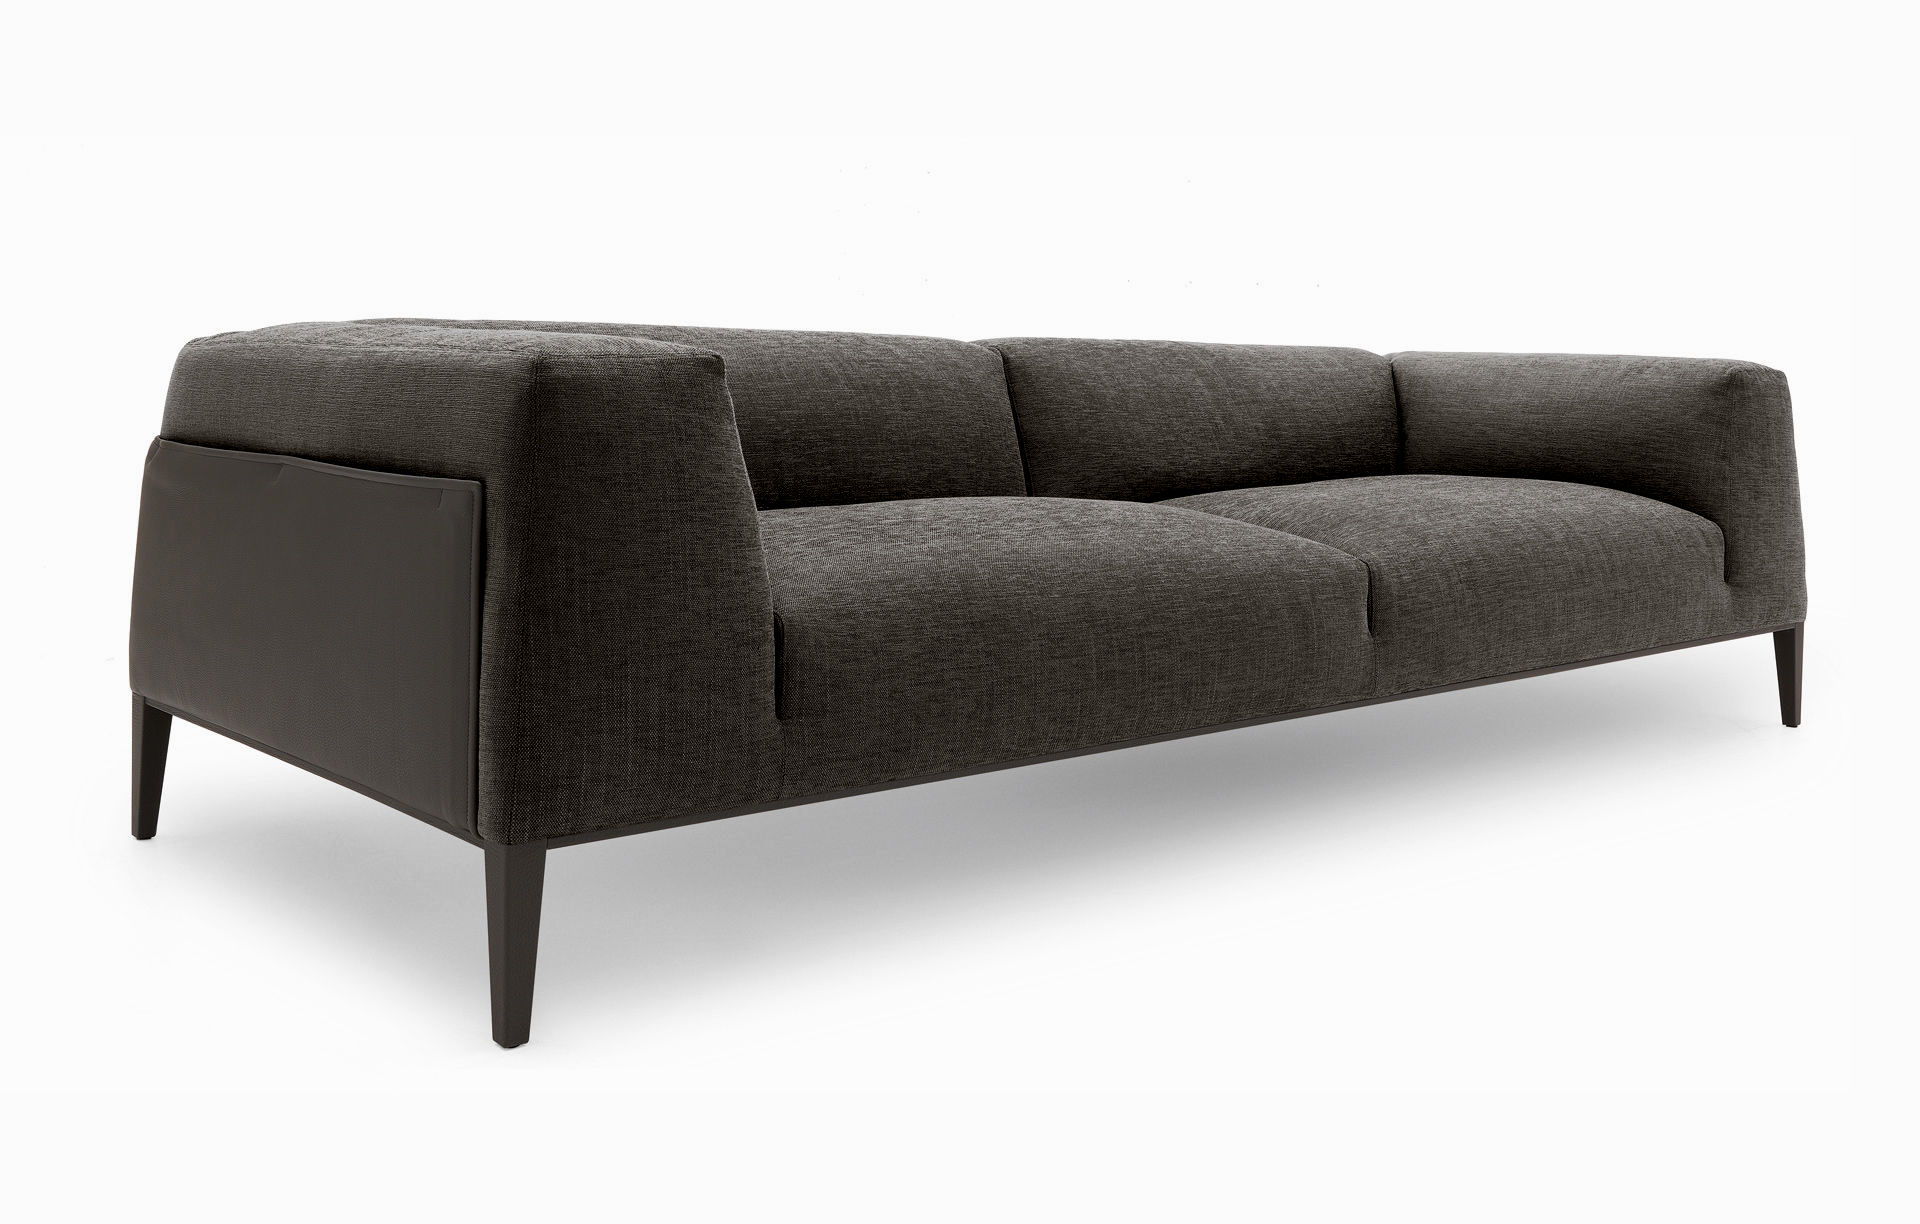 cool cheap sofas for sale plan-Amazing Cheap sofas for Sale Layout